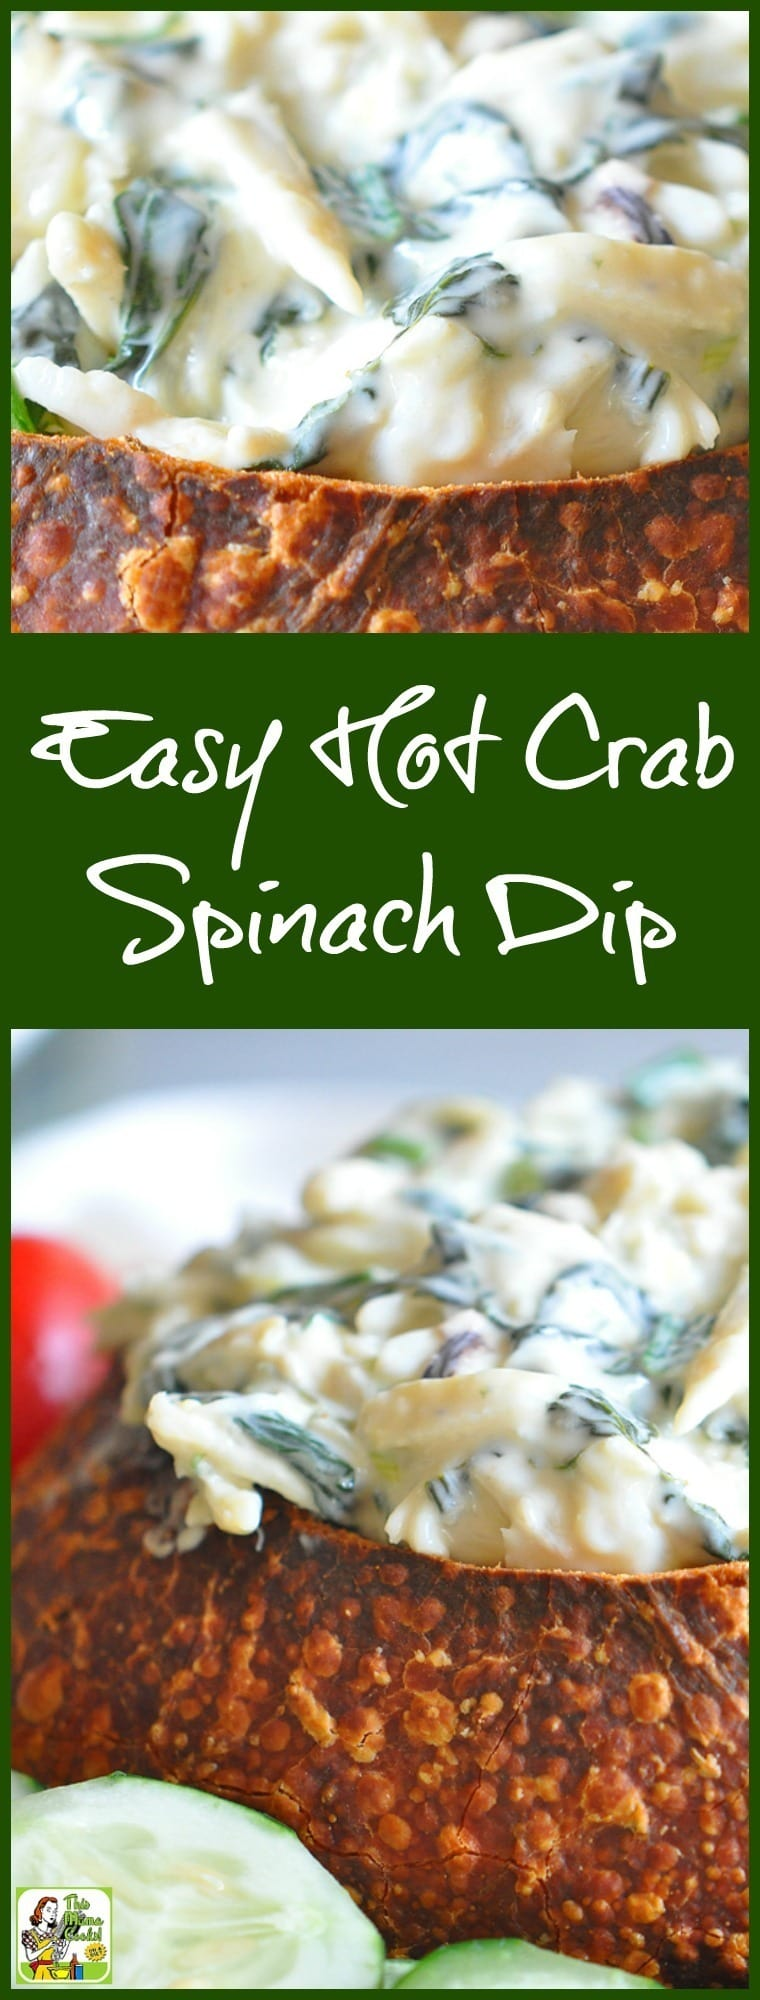 Need a healthy dip appetizer recipe for your party? Try this Easy Hot Crab Spinach Dip Baked in French Bread recipe!